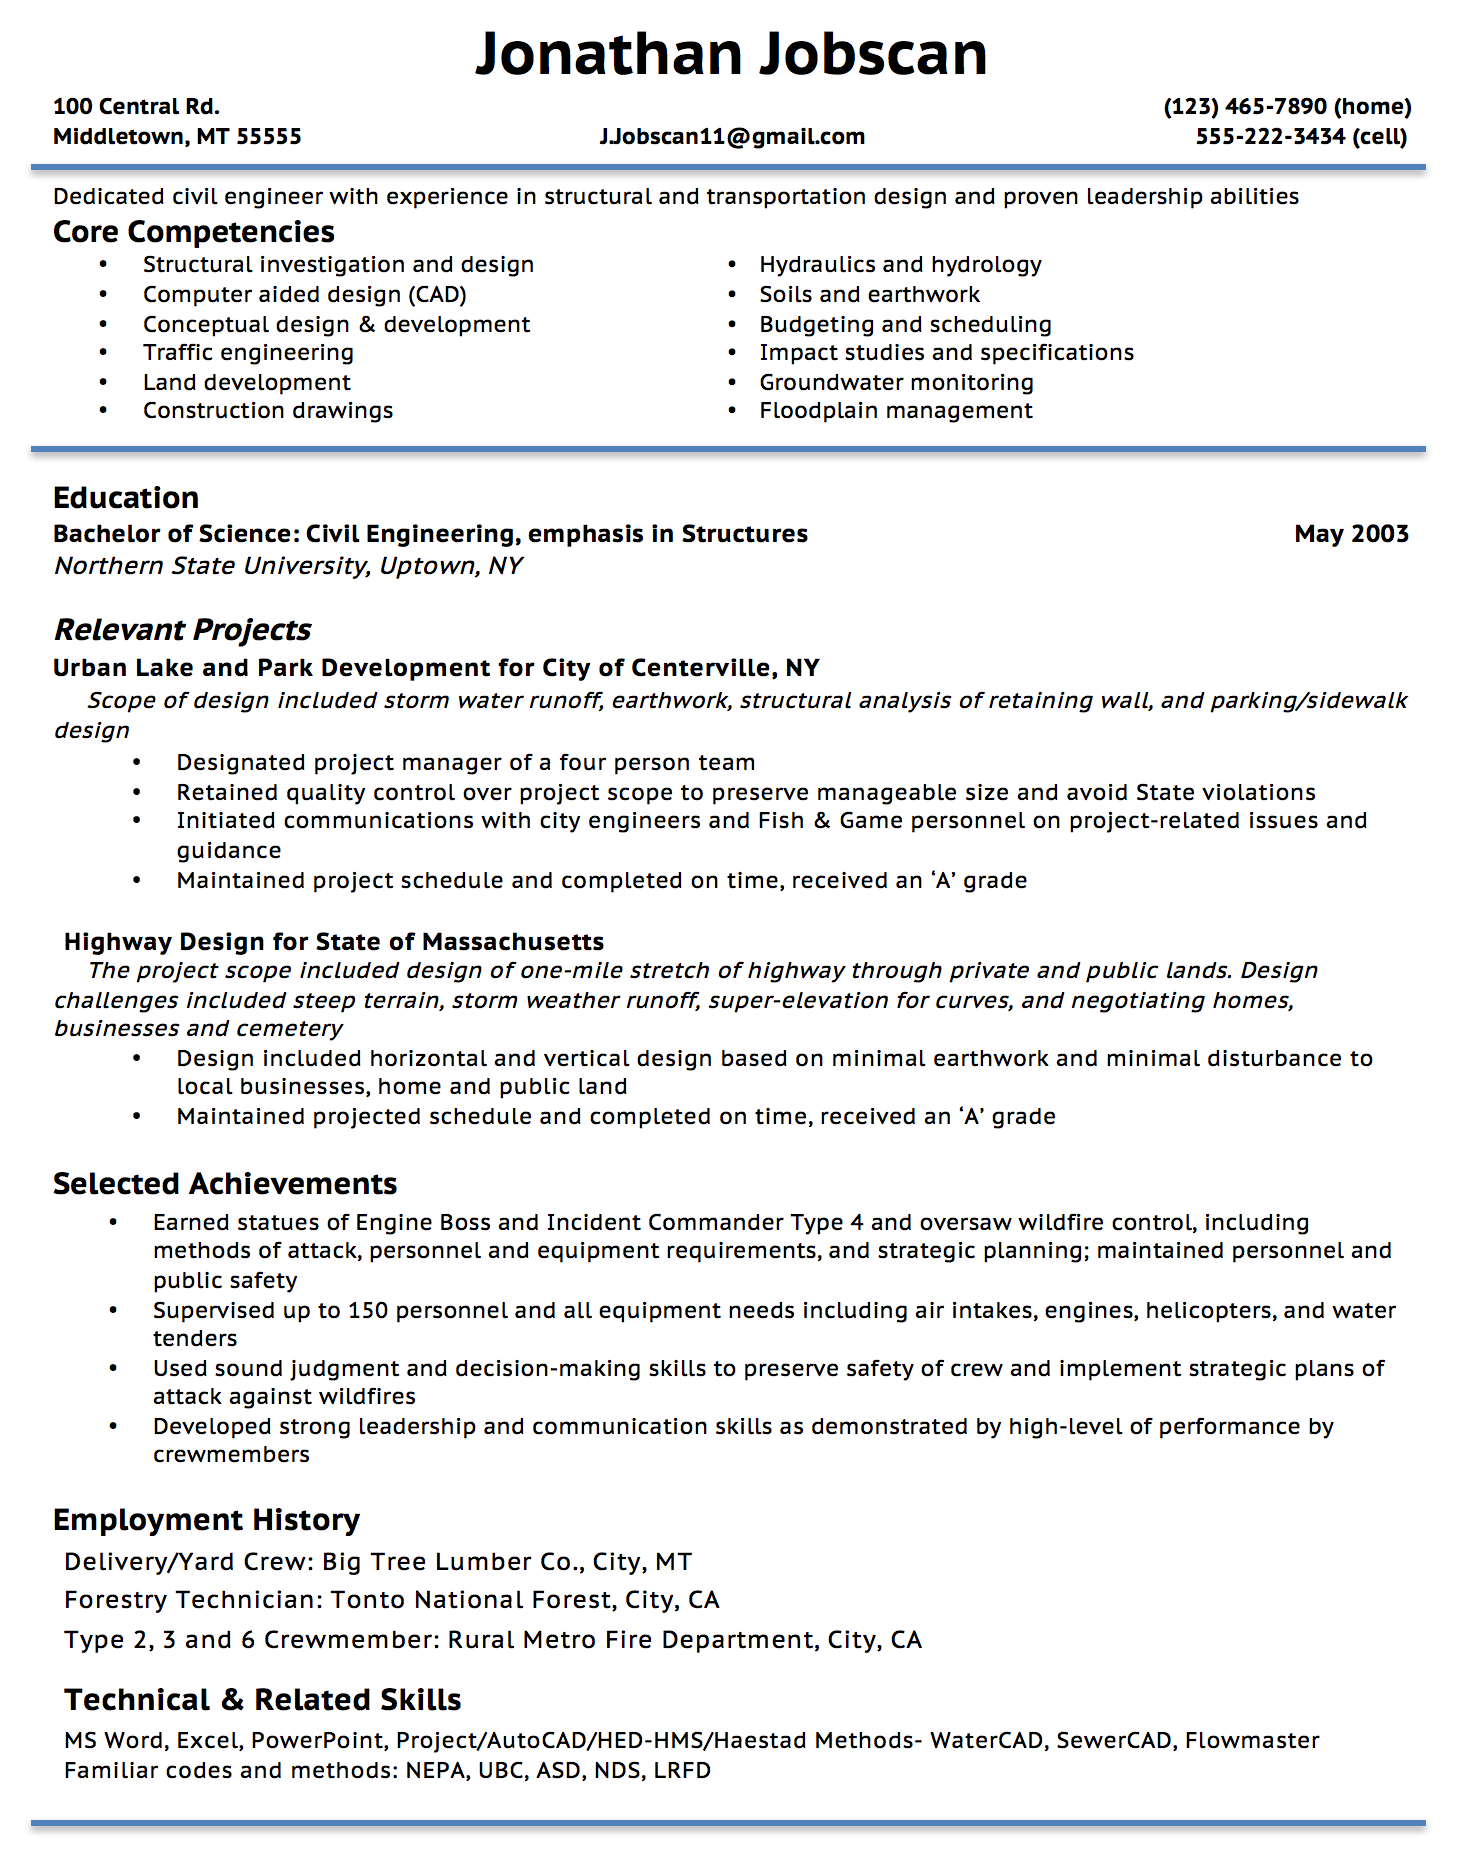 Opposenewapstandardsus  Fascinating Resume Writing Guide  Jobscan With Fetching Example Of A Functional Resume Format With Amazing Resume Outline For High School Students Also Physician Resume Template In Addition Staffing Recruiter Resume And Resume That Stands Out As Well As Microsoft Word Resumes Additionally Resume Competencies From Jobscanco With Opposenewapstandardsus  Fetching Resume Writing Guide  Jobscan With Amazing Example Of A Functional Resume Format And Fascinating Resume Outline For High School Students Also Physician Resume Template In Addition Staffing Recruiter Resume From Jobscanco